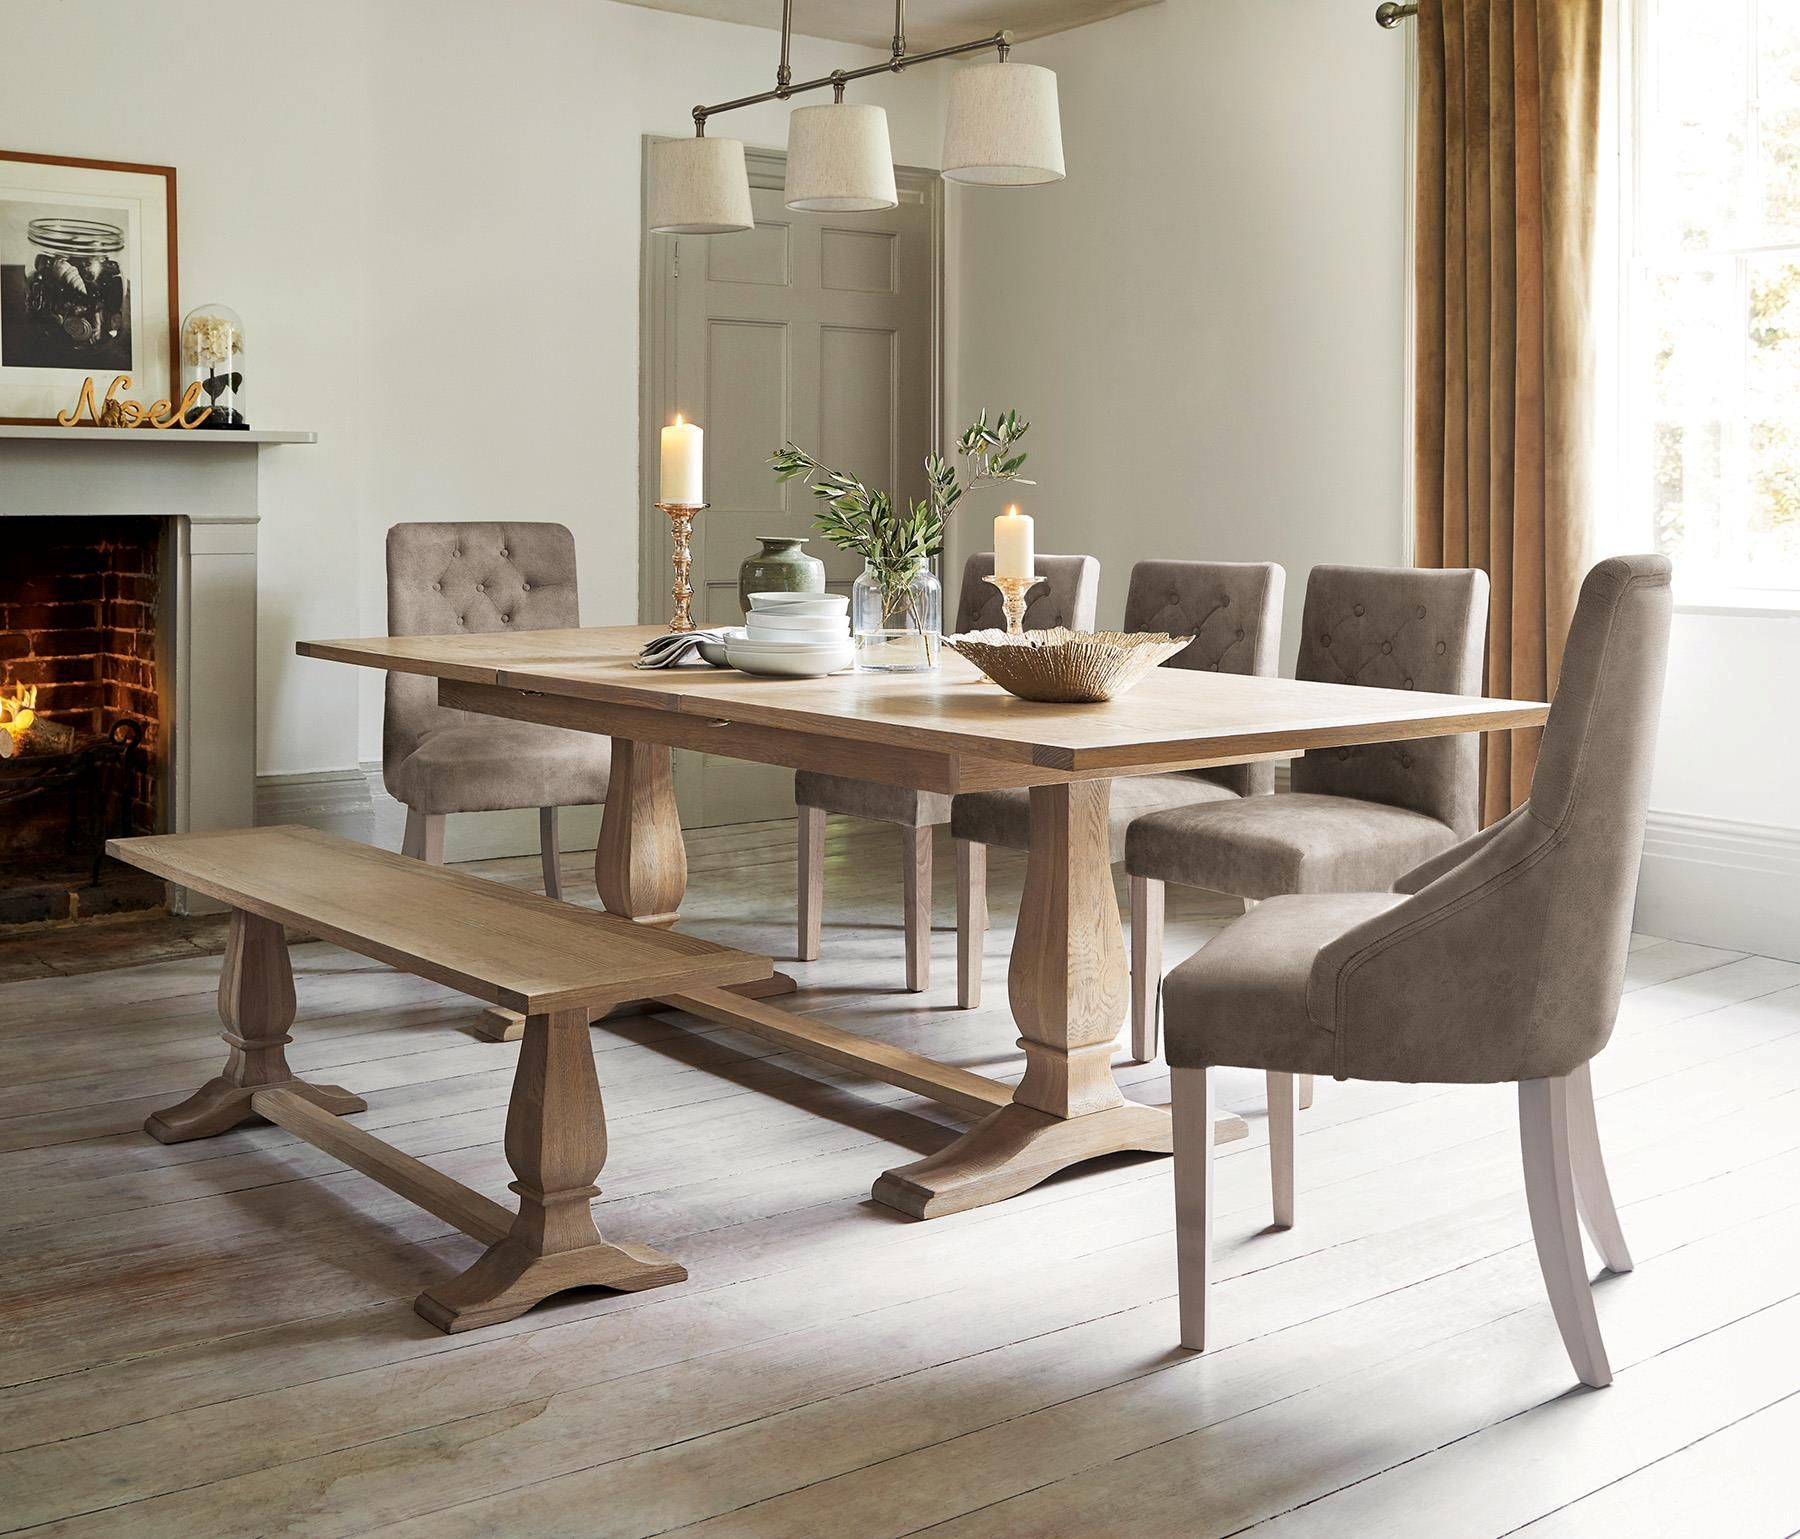 Buy hardwick 6 10 seater extending dining table from the next uk online shop